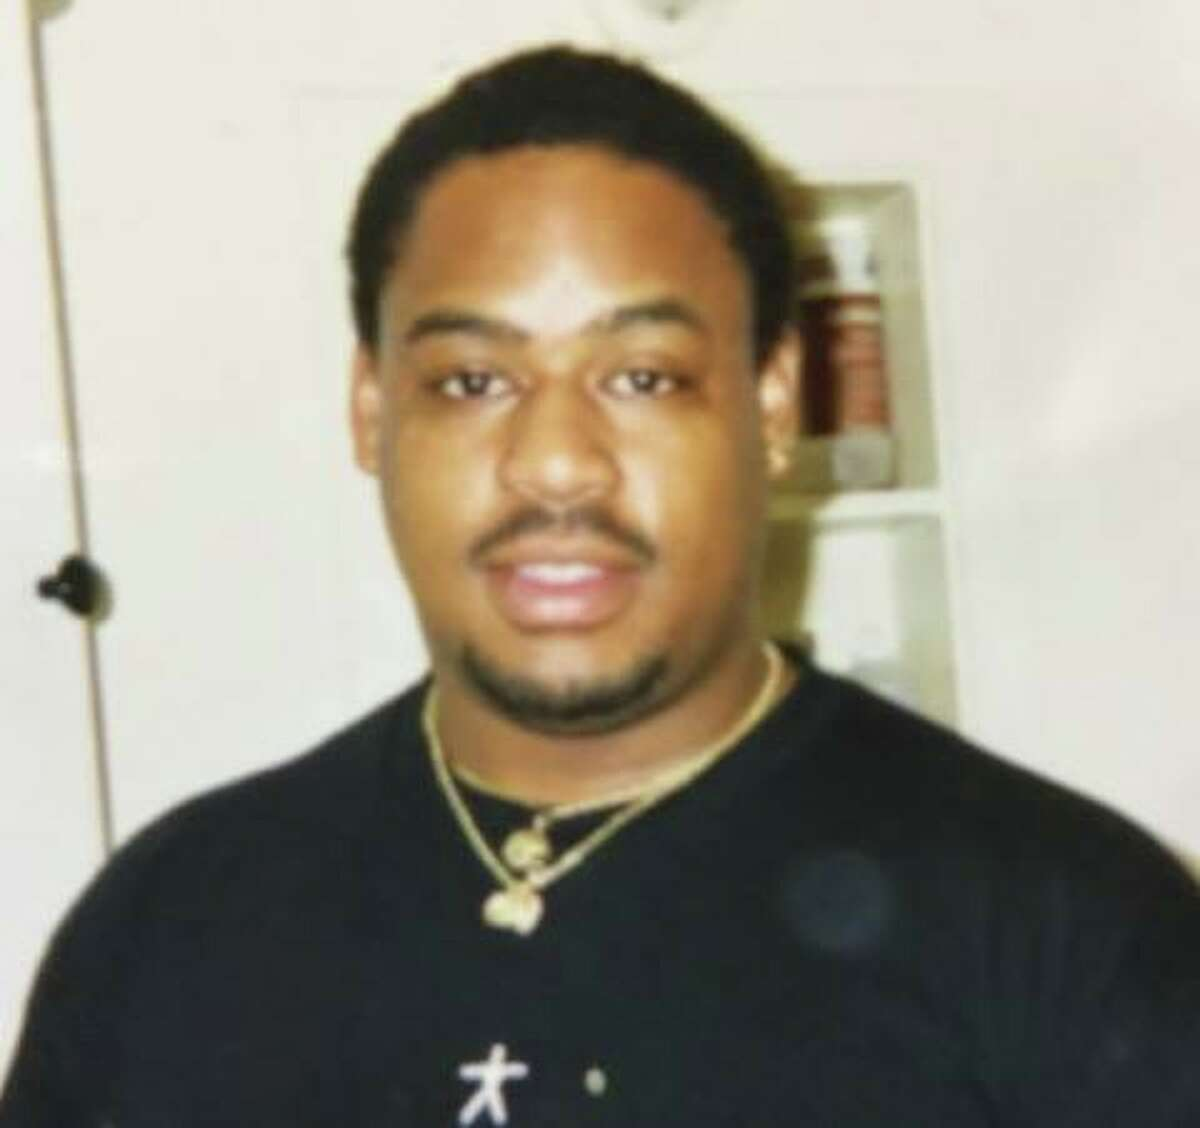 Sean Moore, 42, was shot and seriously wounded by a San Francisco police officer in front of his home in the Ocean View neighborhood. The San Francisco Board of Supervisors is now considering a $3.25 million legal settlement for Moore's family.